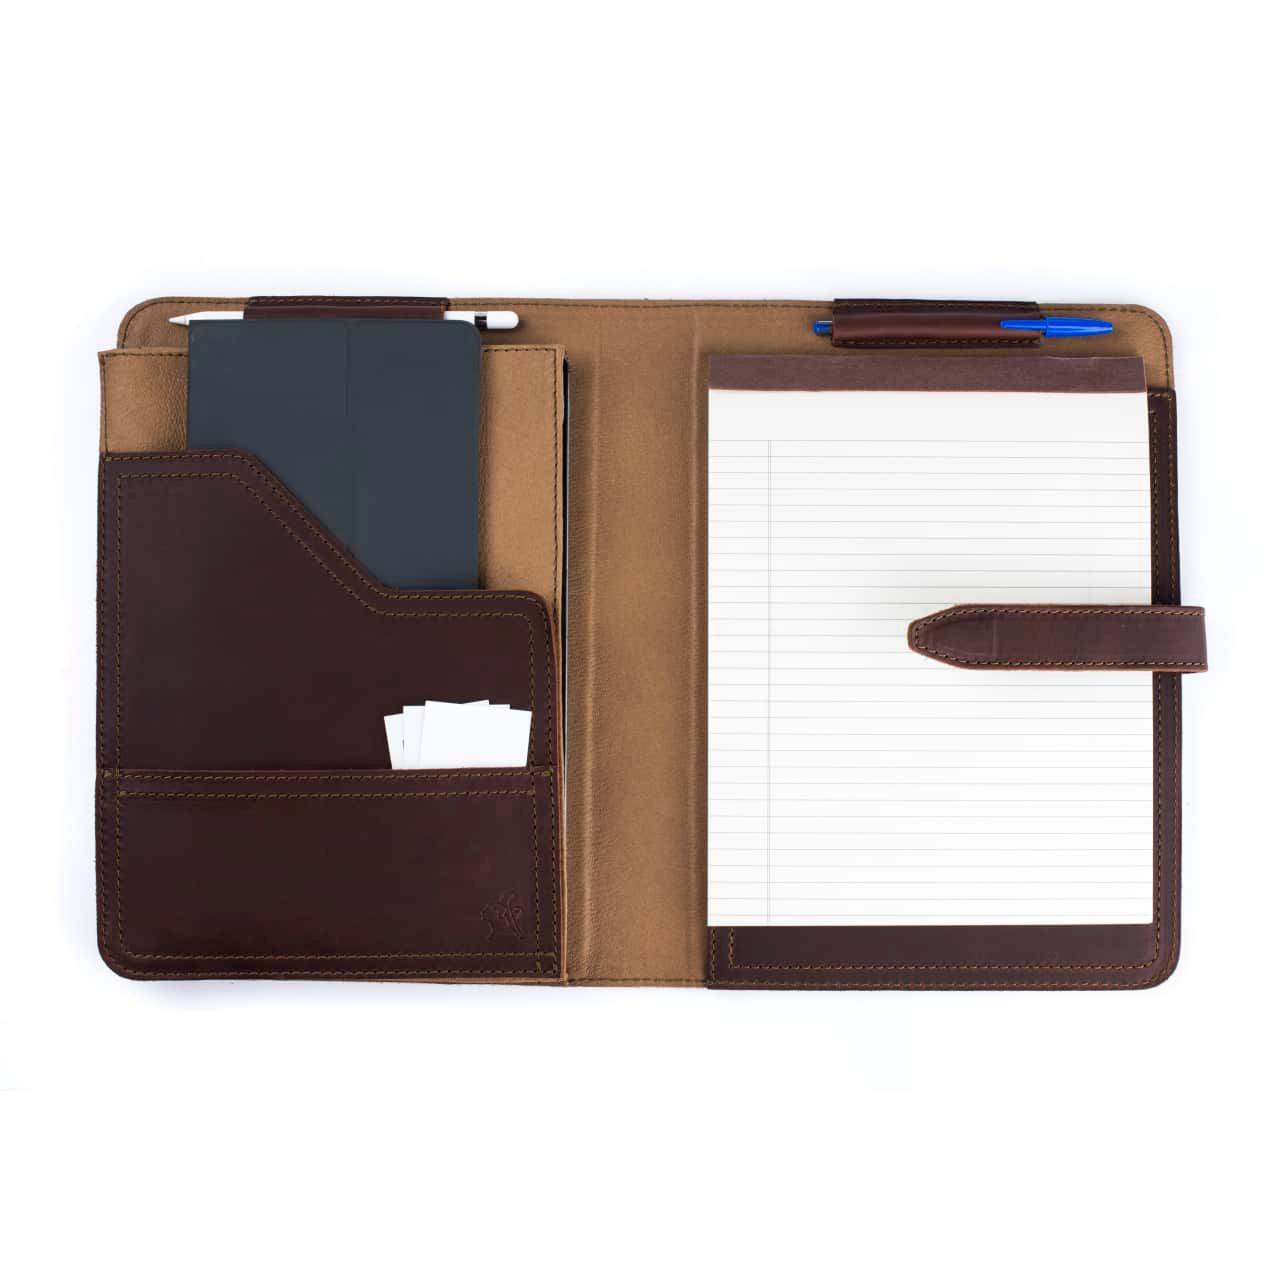 Leather Tablet Notepad Holder Open with Notepad and Pens in the Color Chestnut